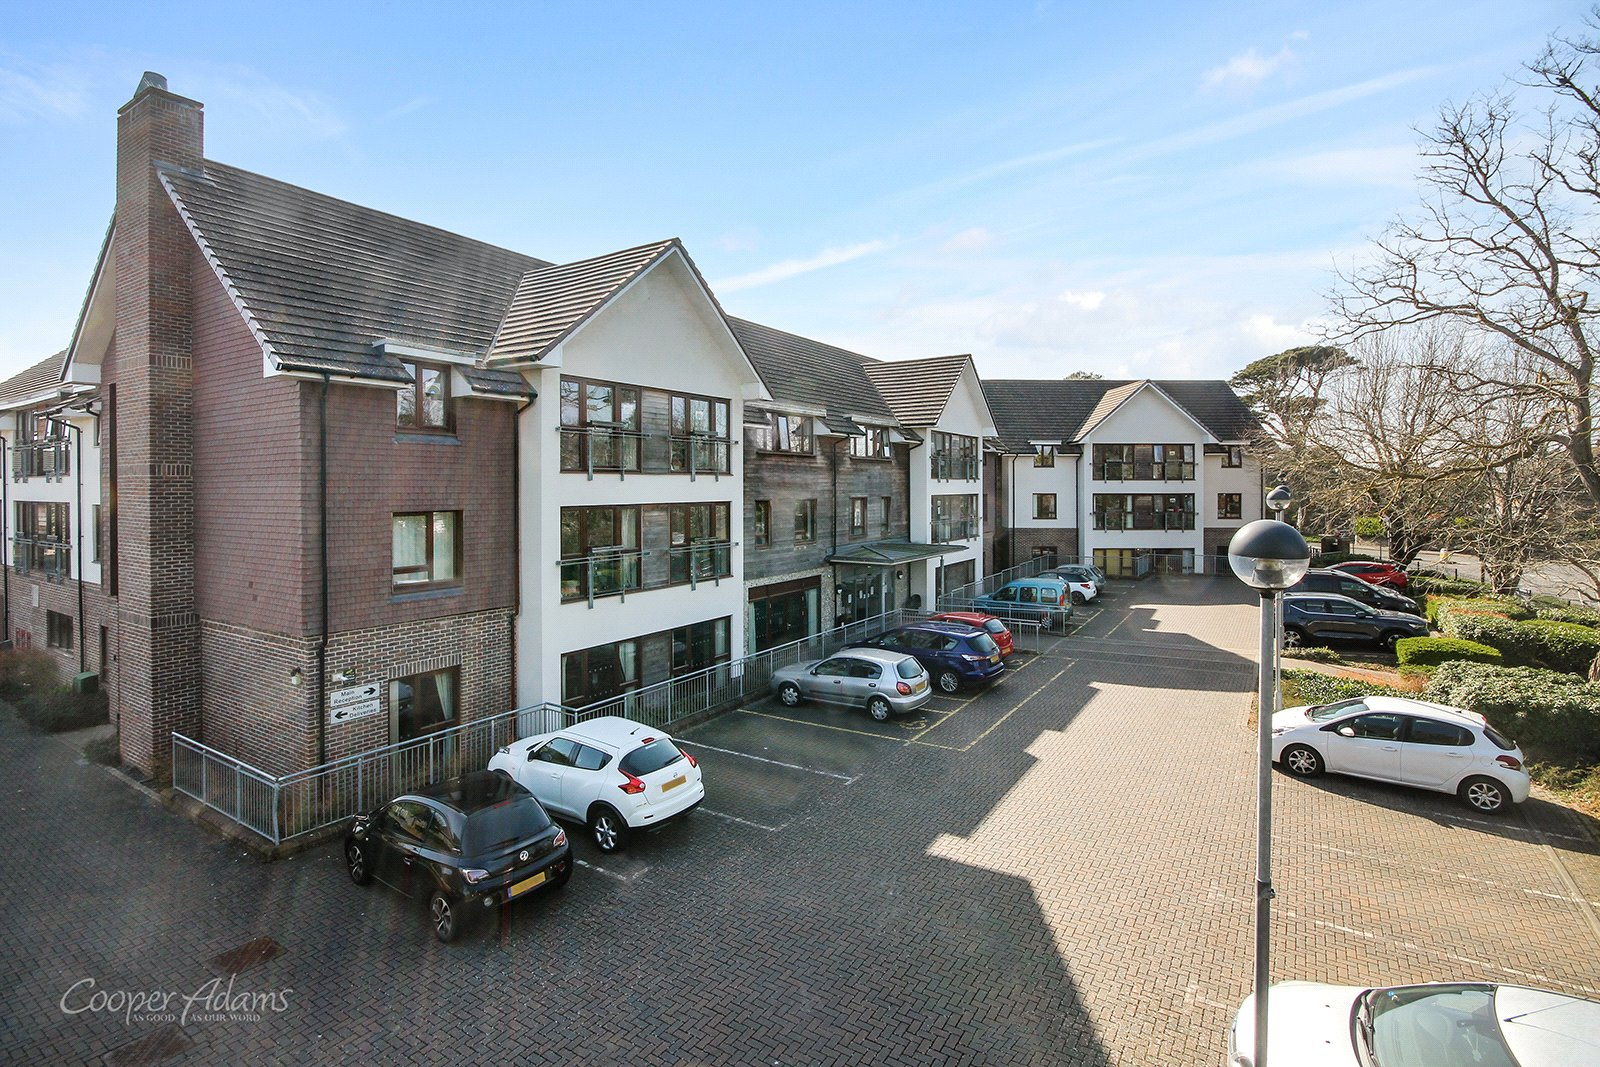 2 bed apartment for sale in Abbotswood Station Road, Rustington, BN16